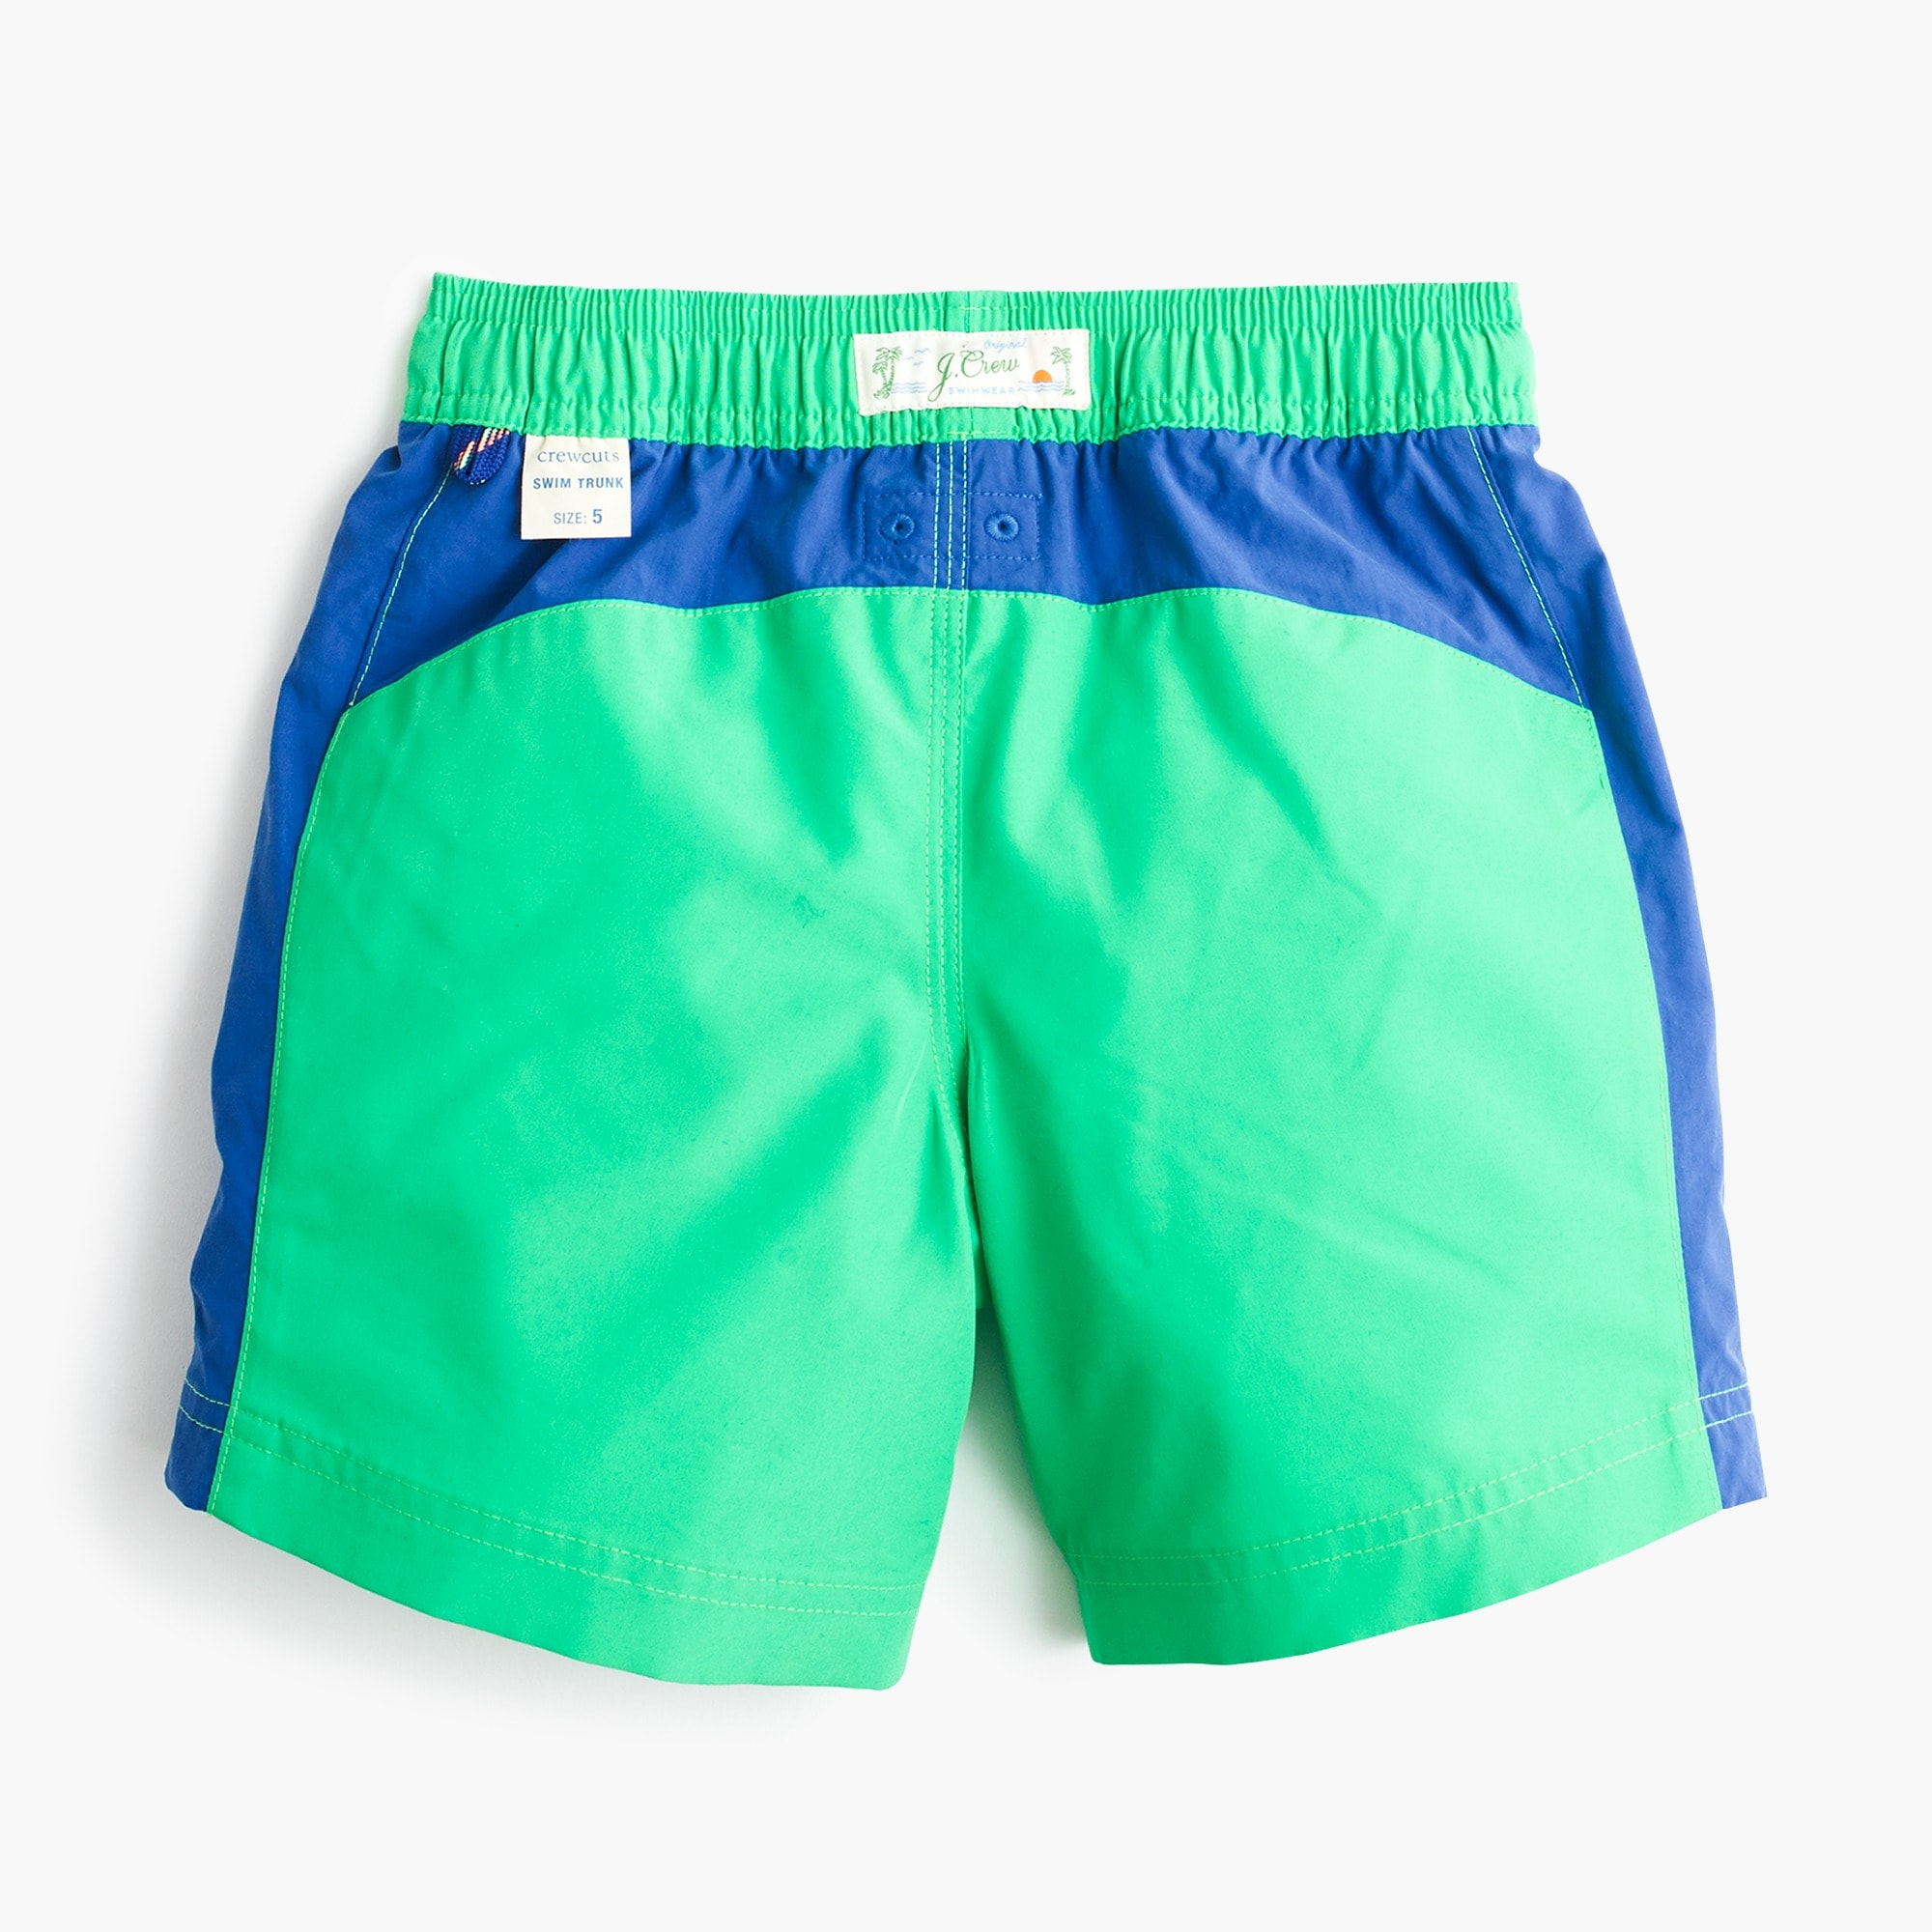 Image 2 for Boys' swim trunk in side stripe